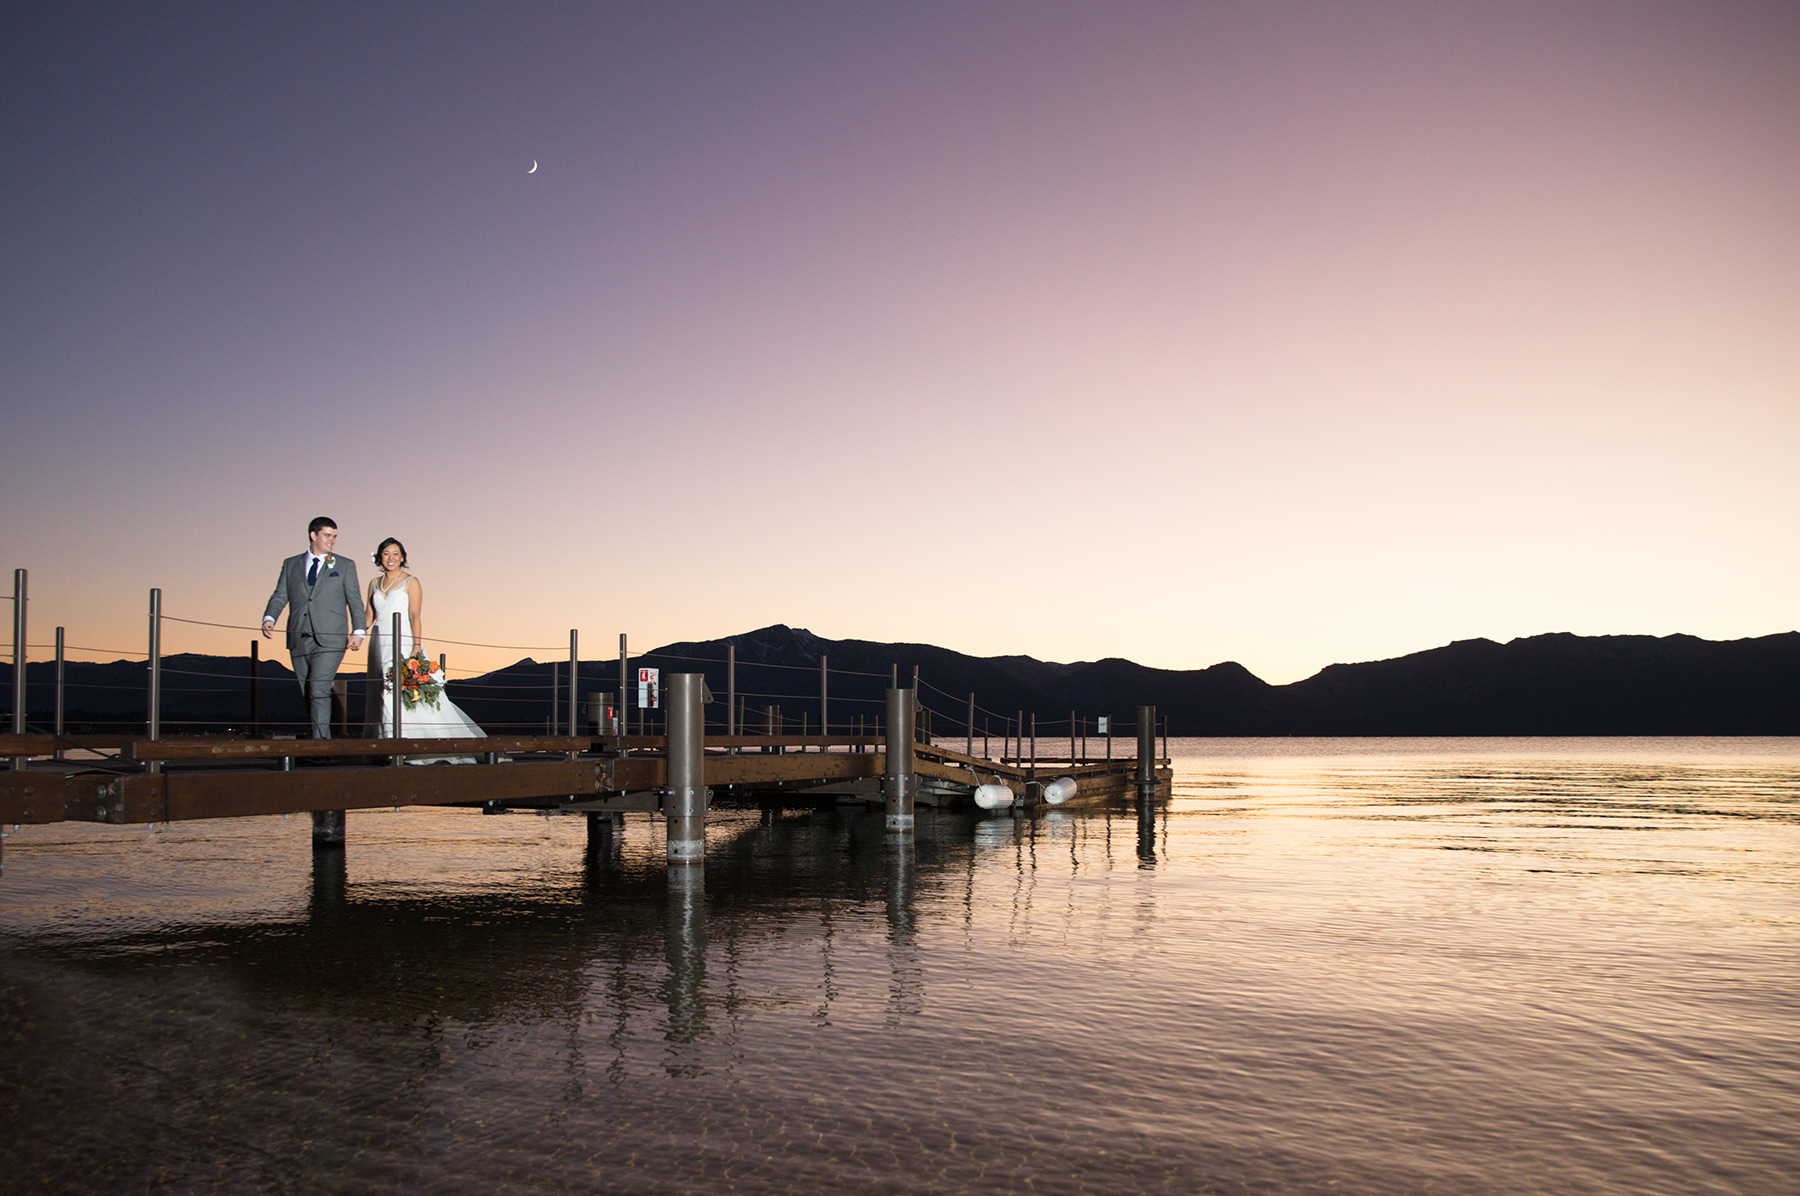 Edgewood-pier-wedding-sunset-Tahoe